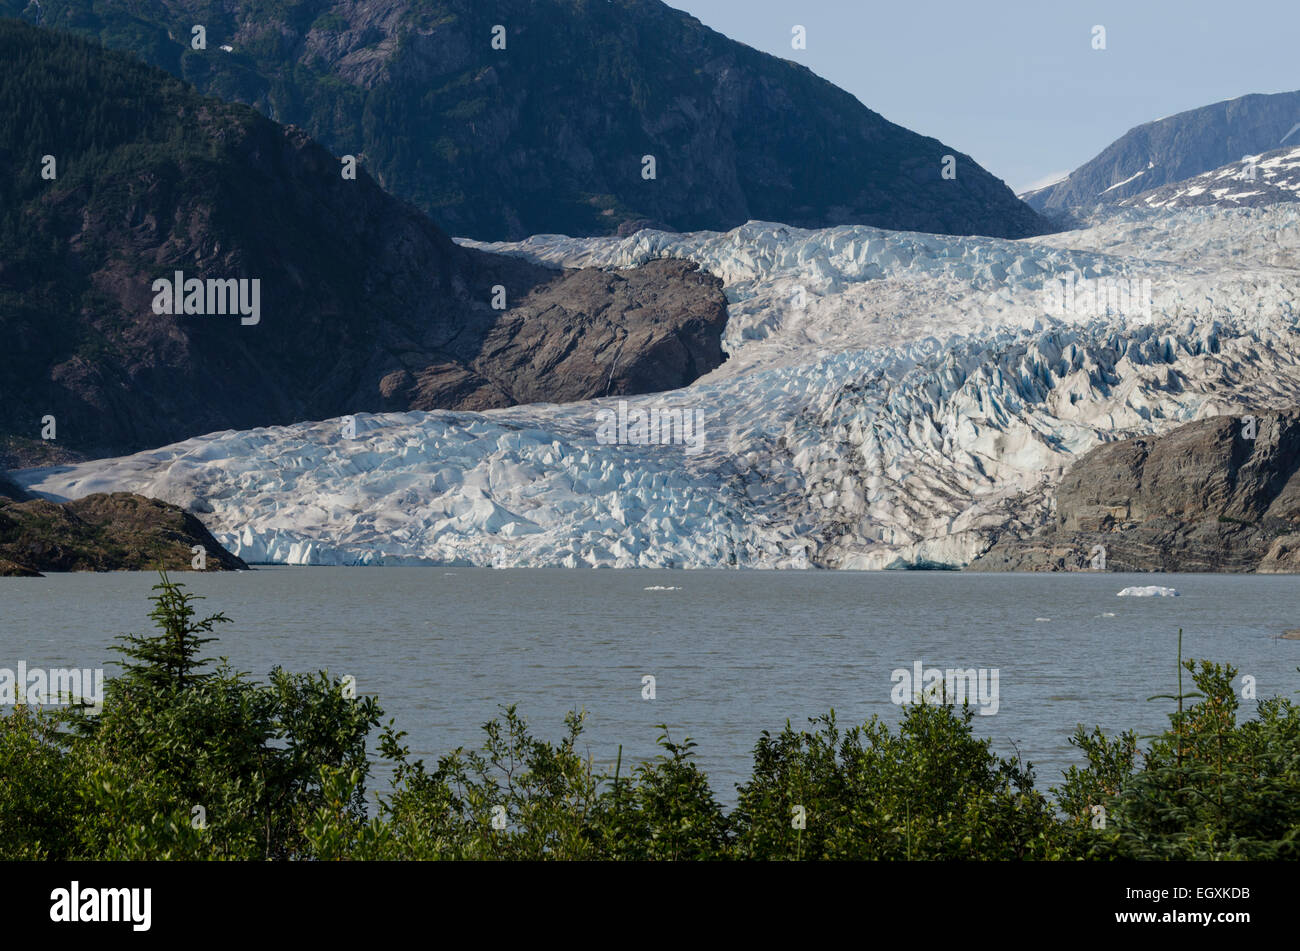 Mendenhall Glacier is a tidewater glacier terminating in Mendenhall lake some 16 miles from downtown Juneau, Alaska's - Stock Image